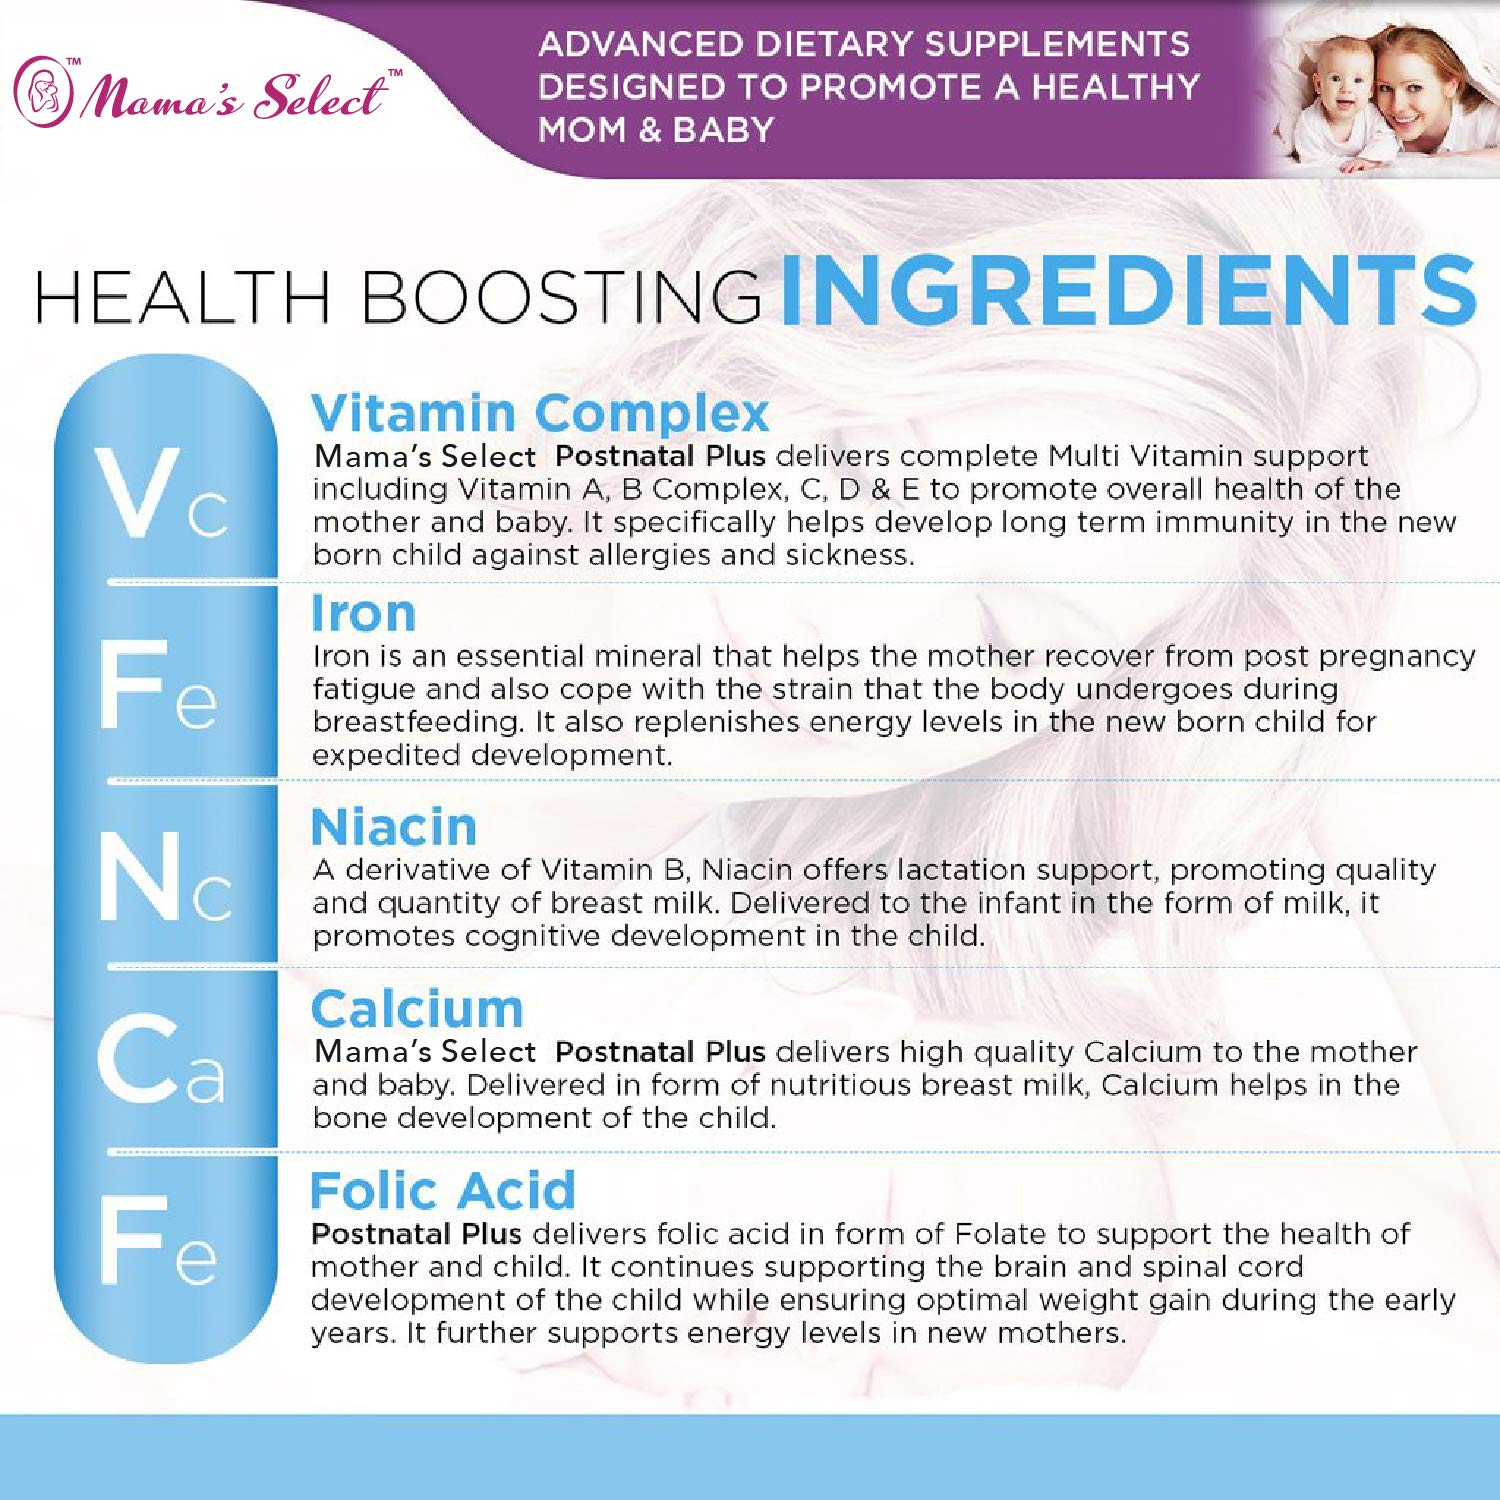 Vitamins and minerals in breast milk